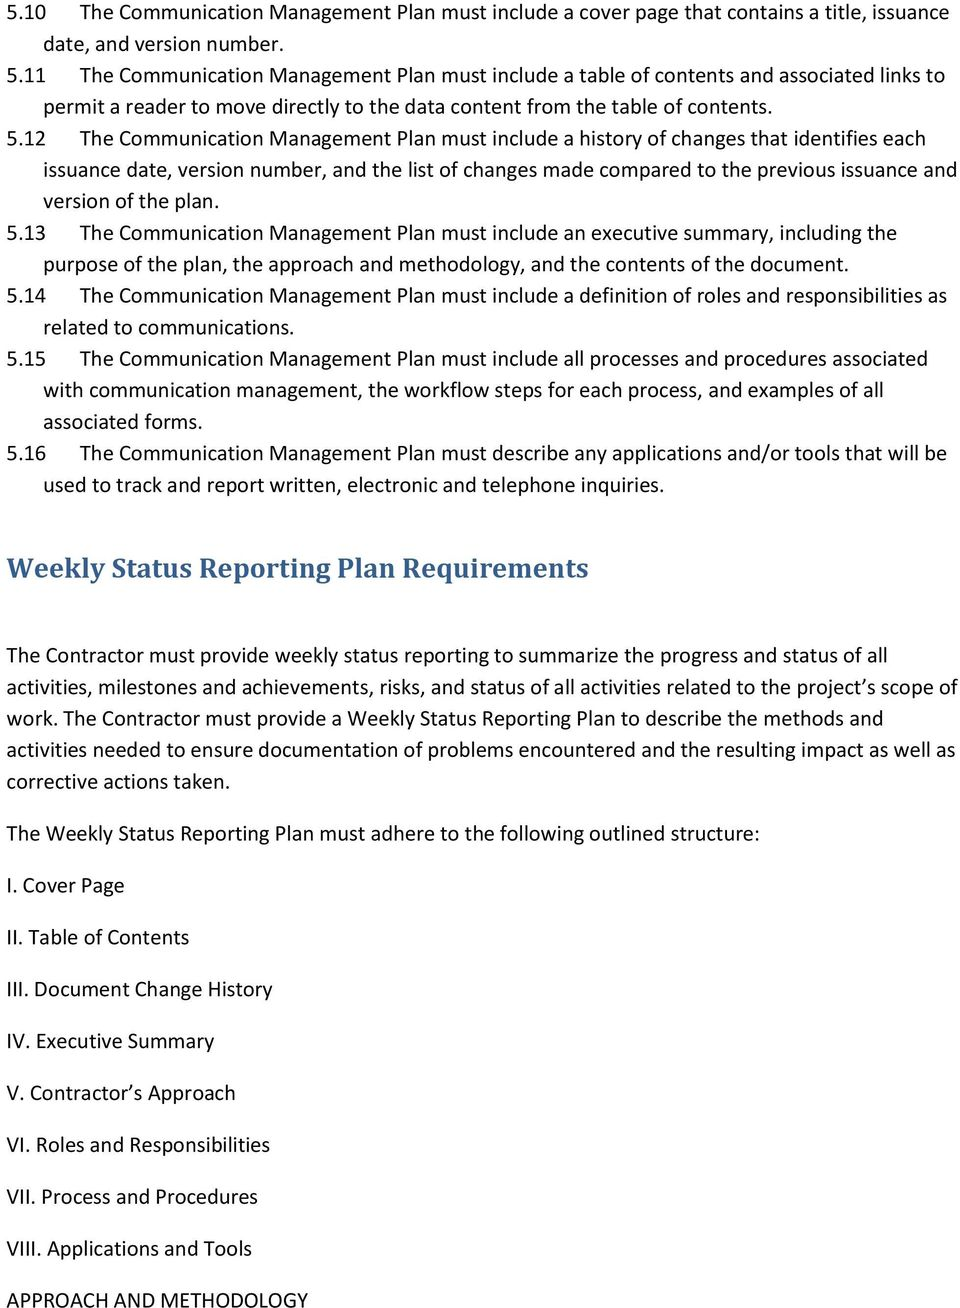 12 The Communication Management Plan must include a history of changes that identifies each issuance date, version number, and the list of changes made compared to the previous issuance and version